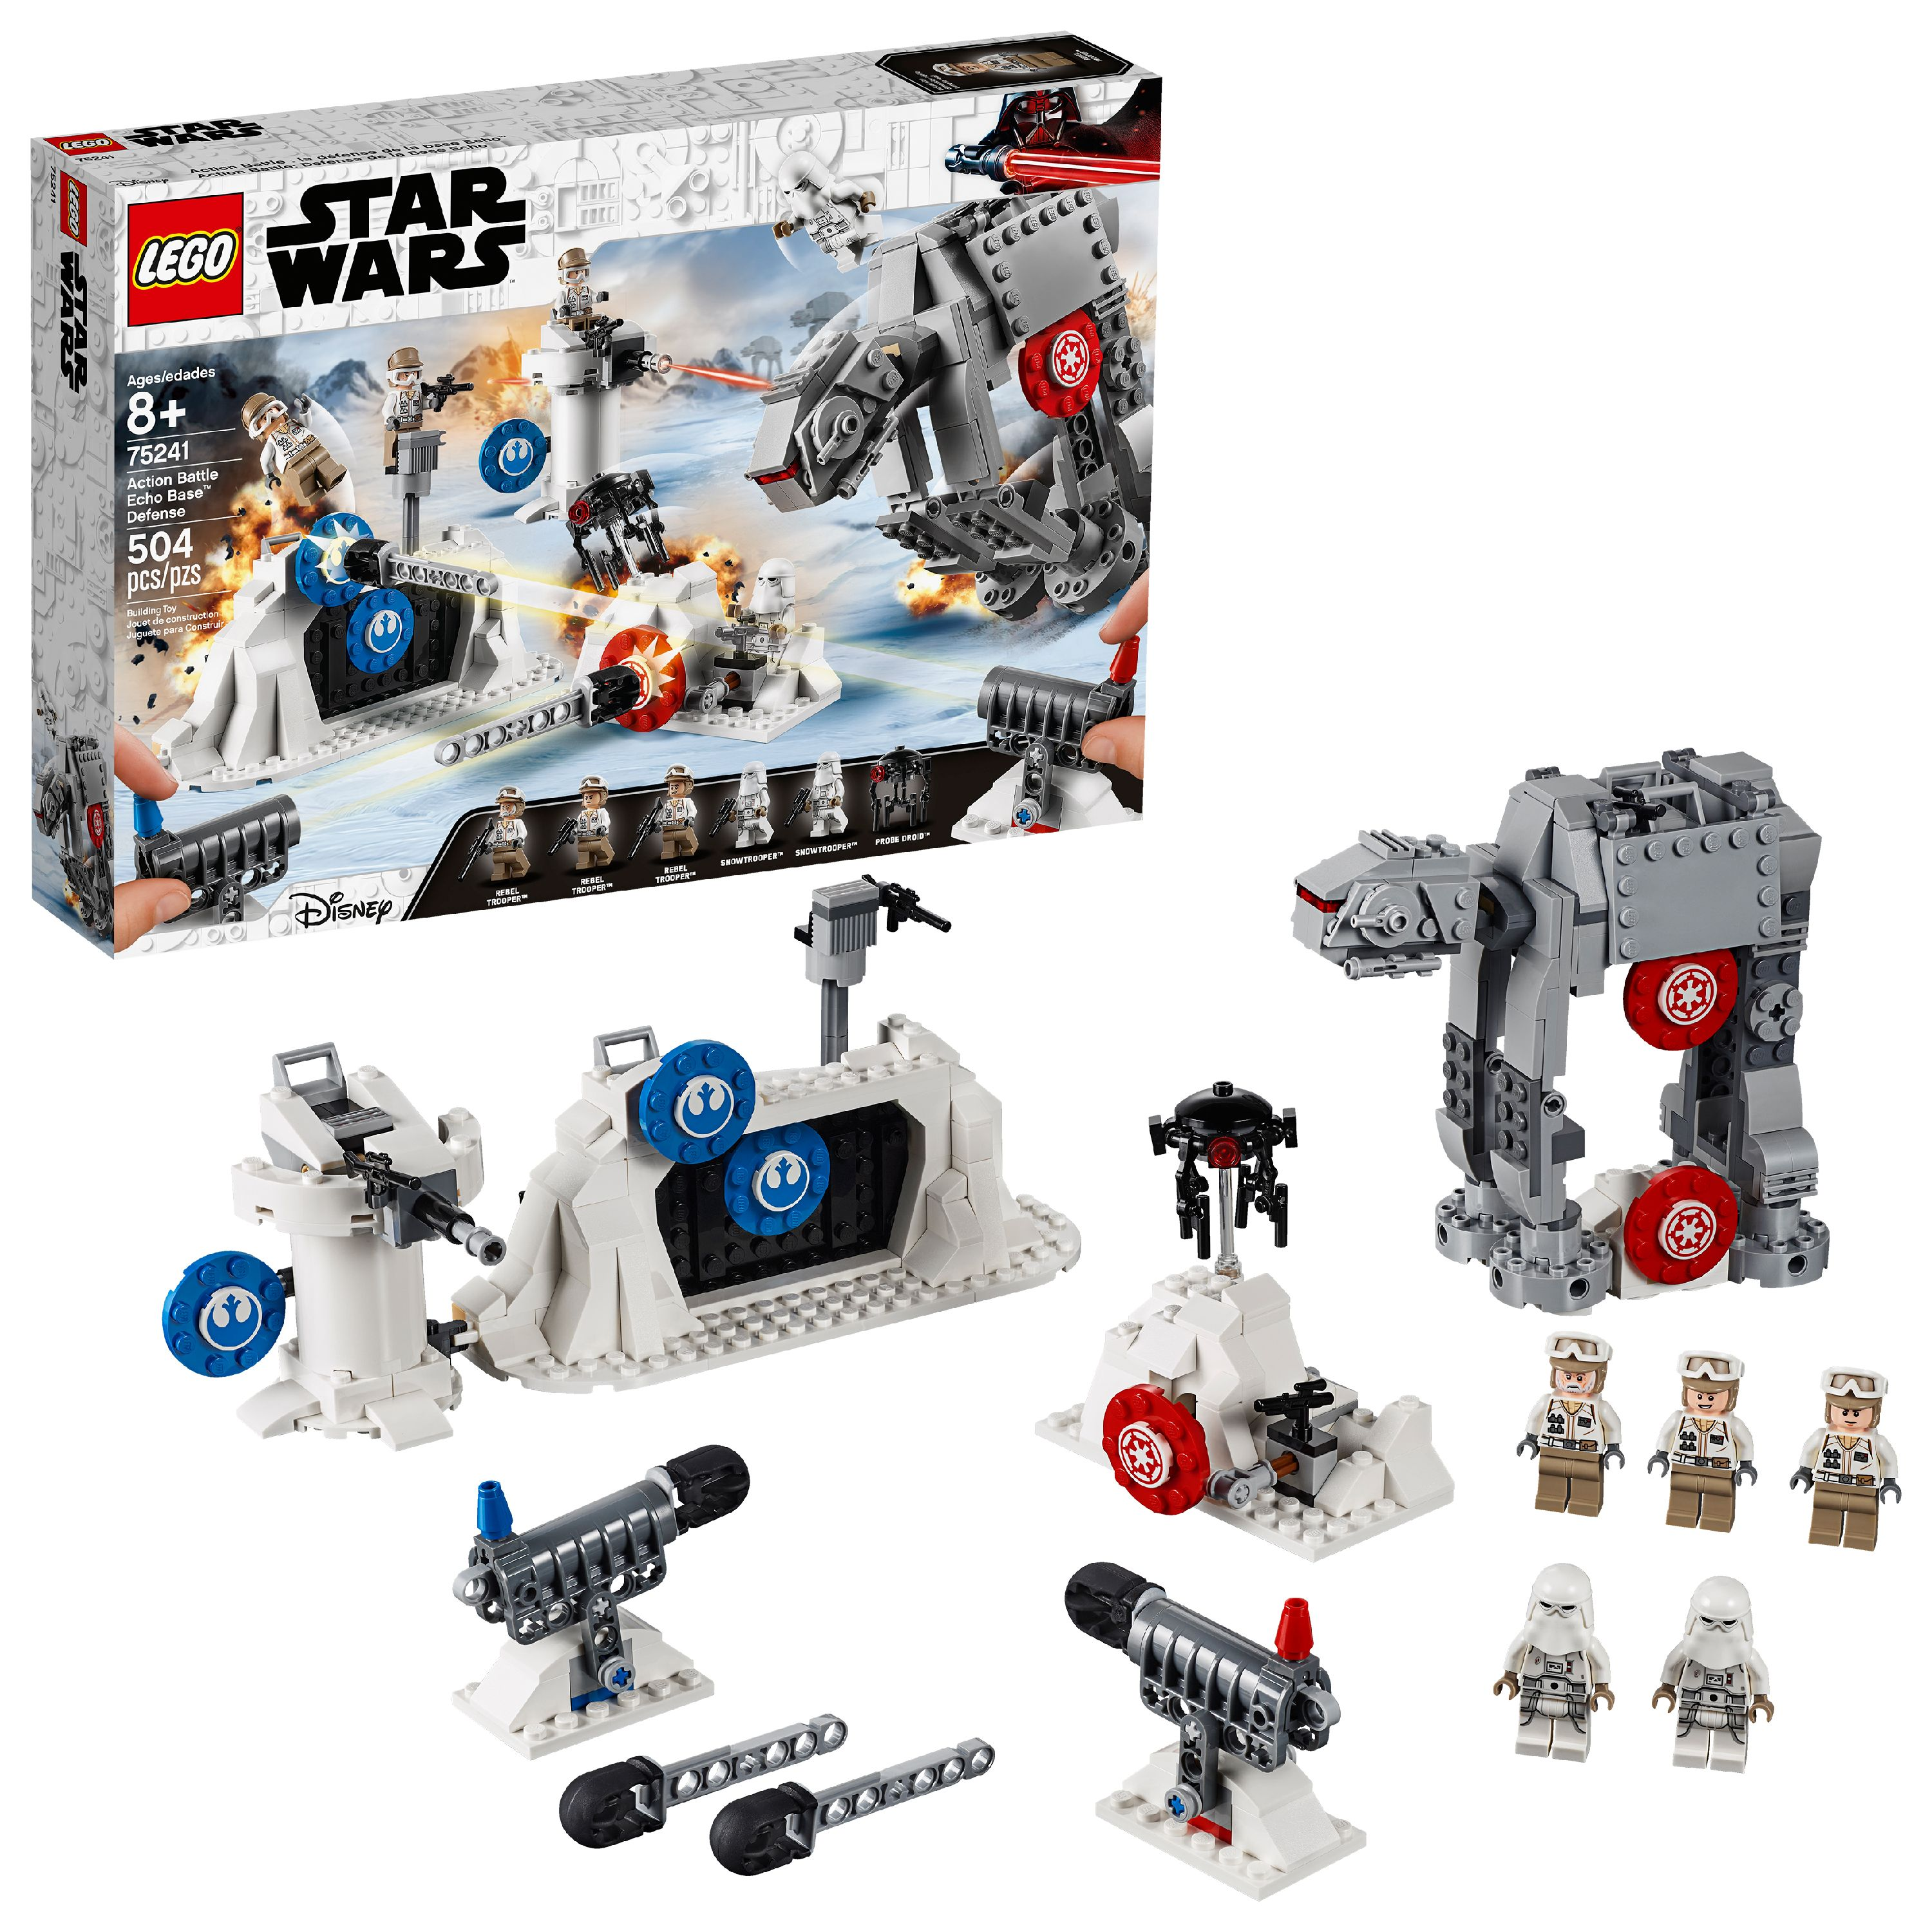 LEGO Star Wars TM Action Battle Echo Base Defense 75241